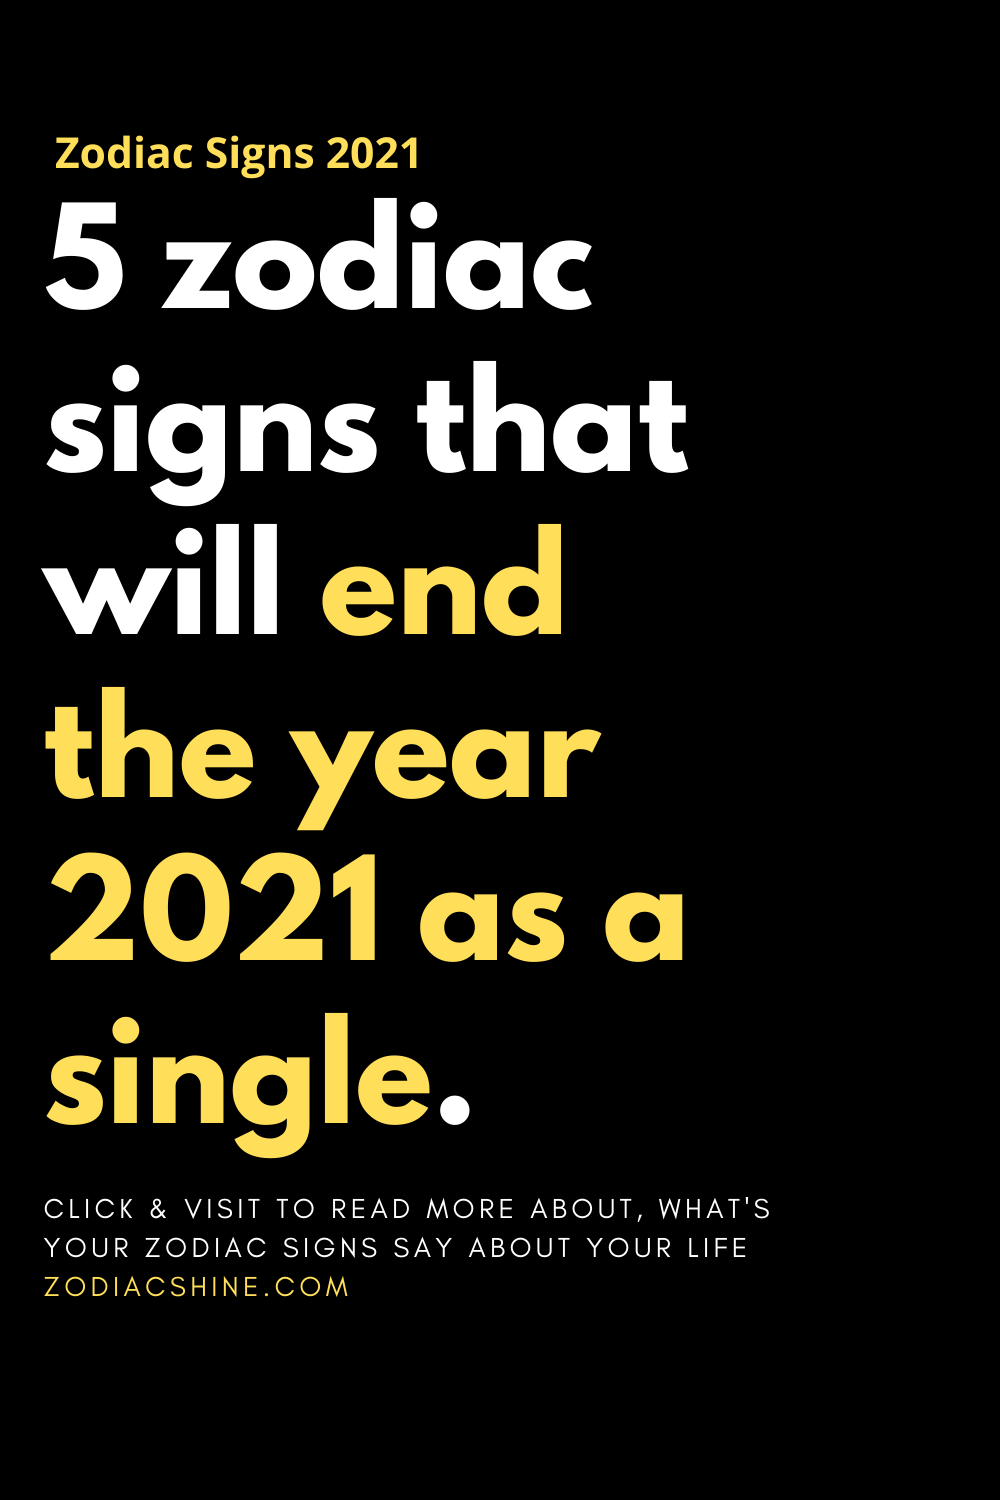 5 zodiac signs that will end the year 2021 as a single.